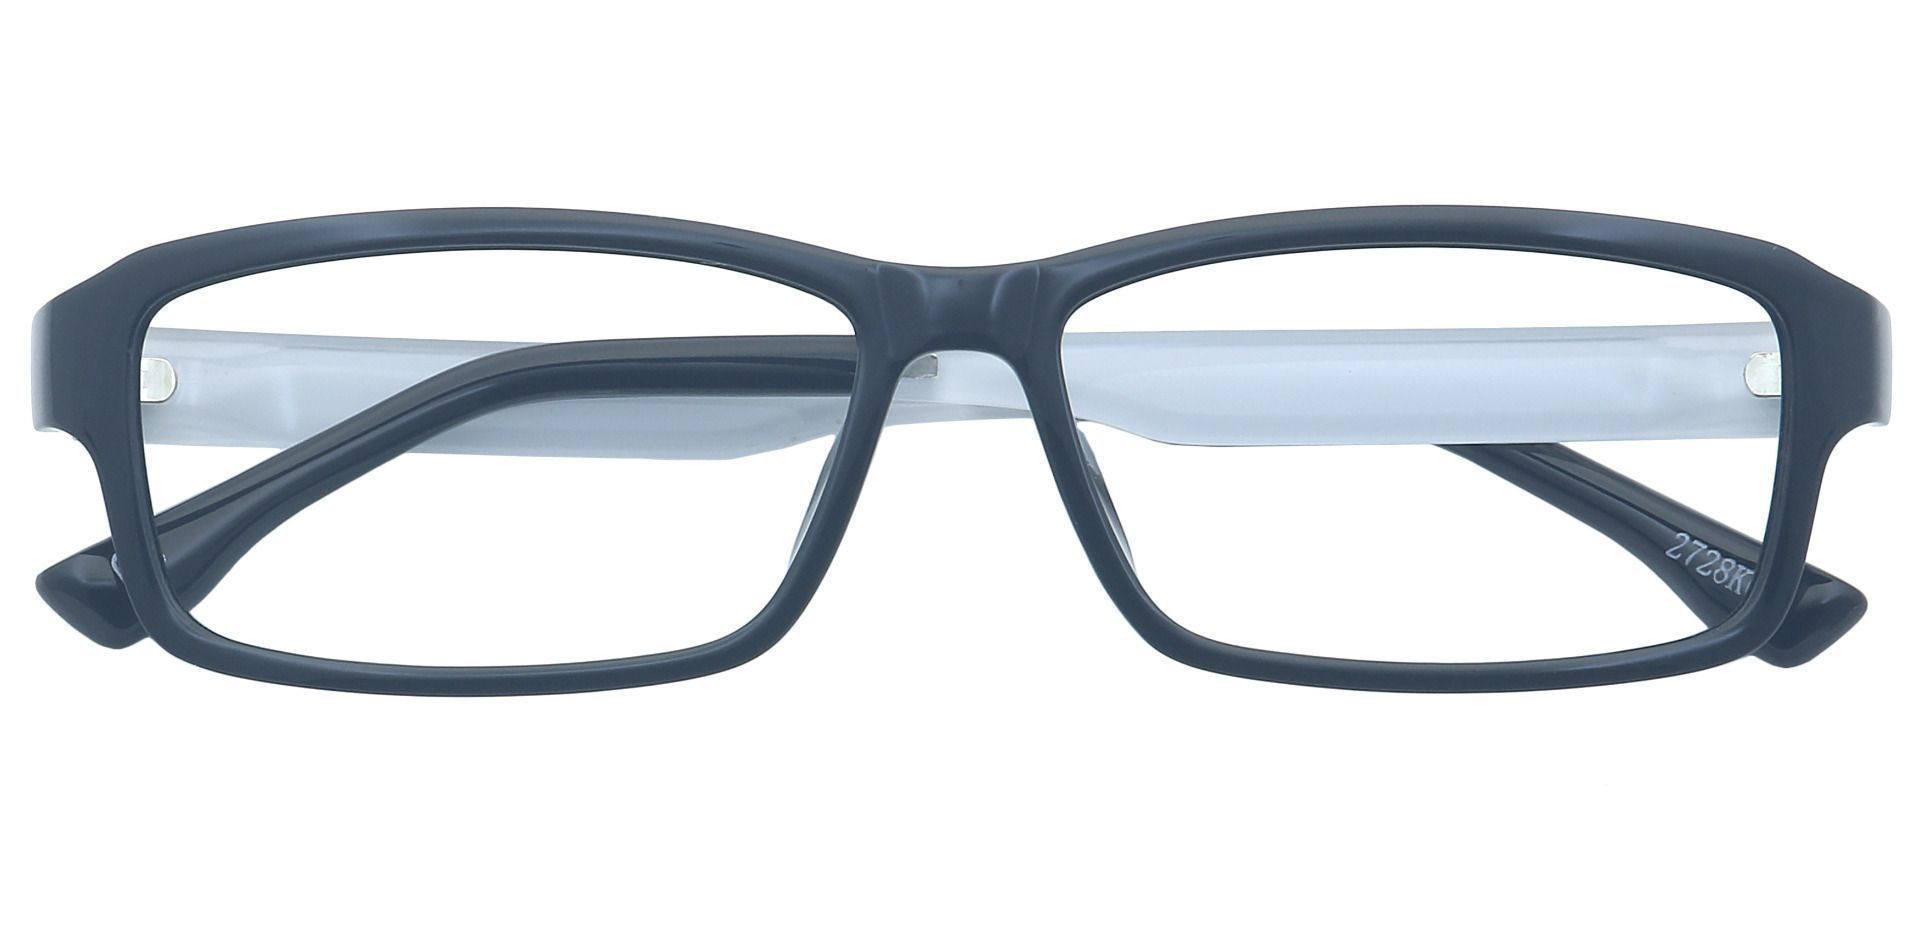 Denim Rectangle Prescription Glasses - Black